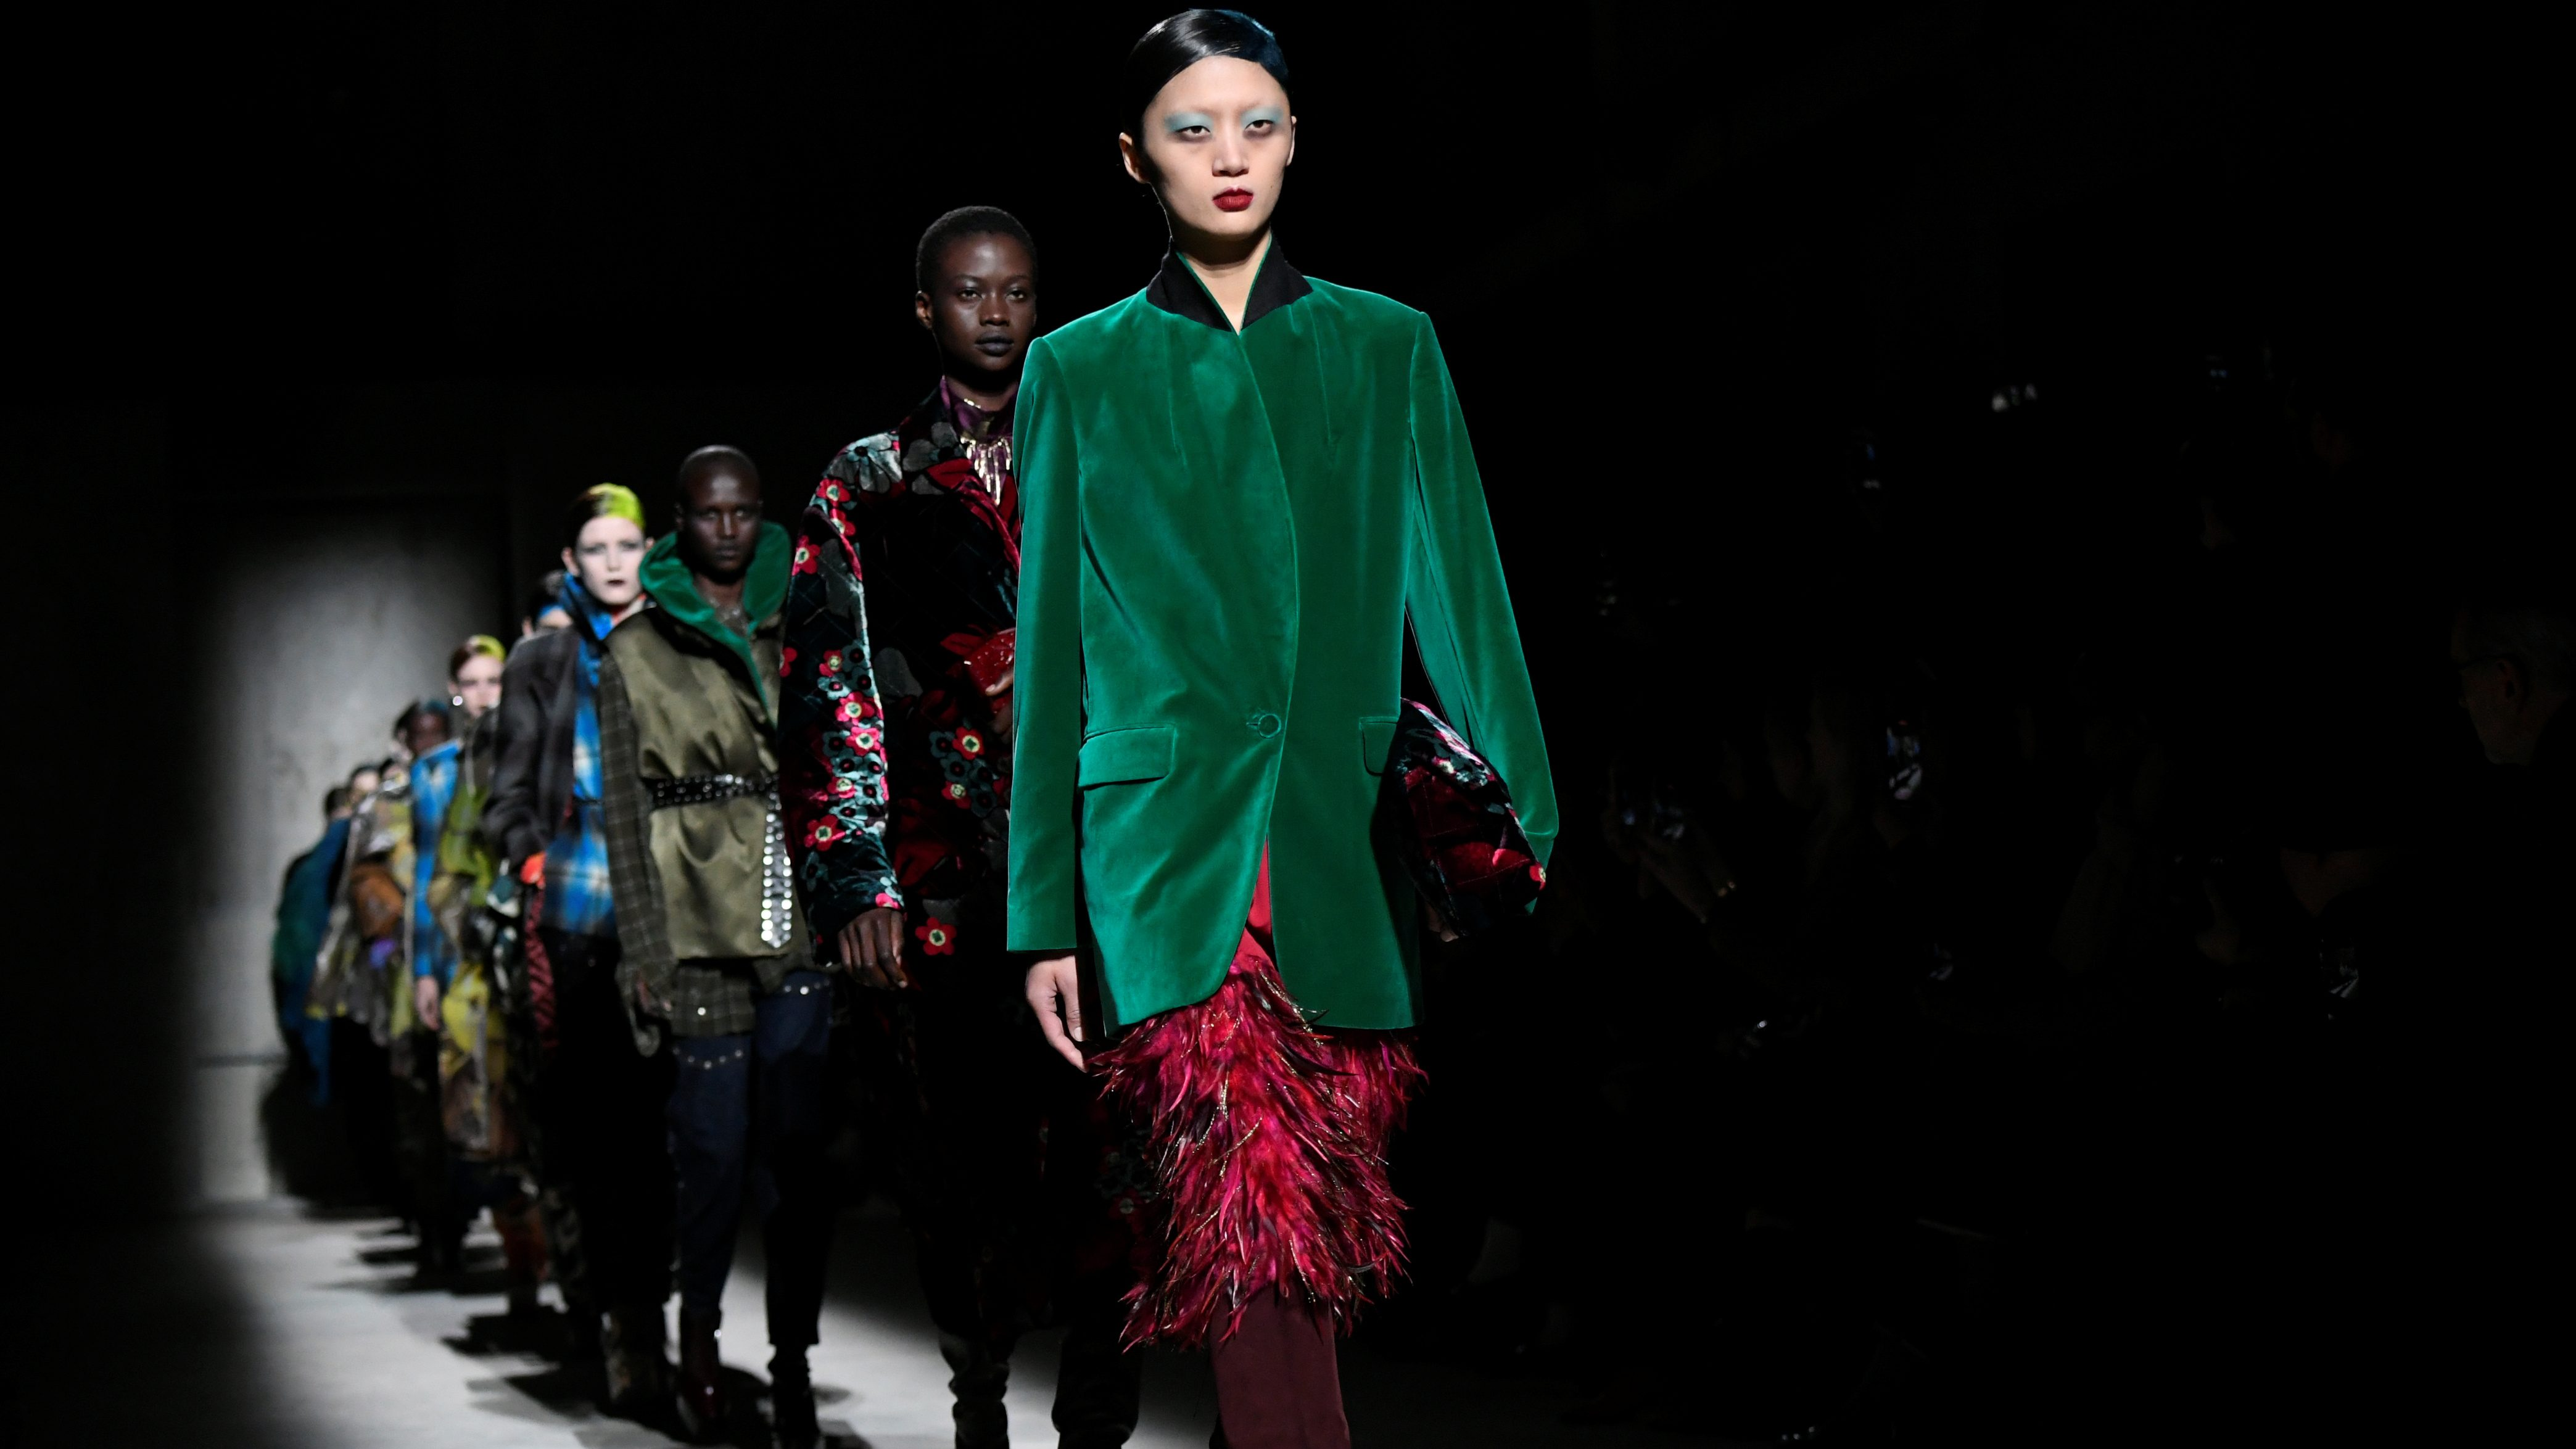 Models present creations by designer Dries Van Noten as part of his Fall/Winter 2020/21 women's ready-to-wear collection show during Paris Fashion Week